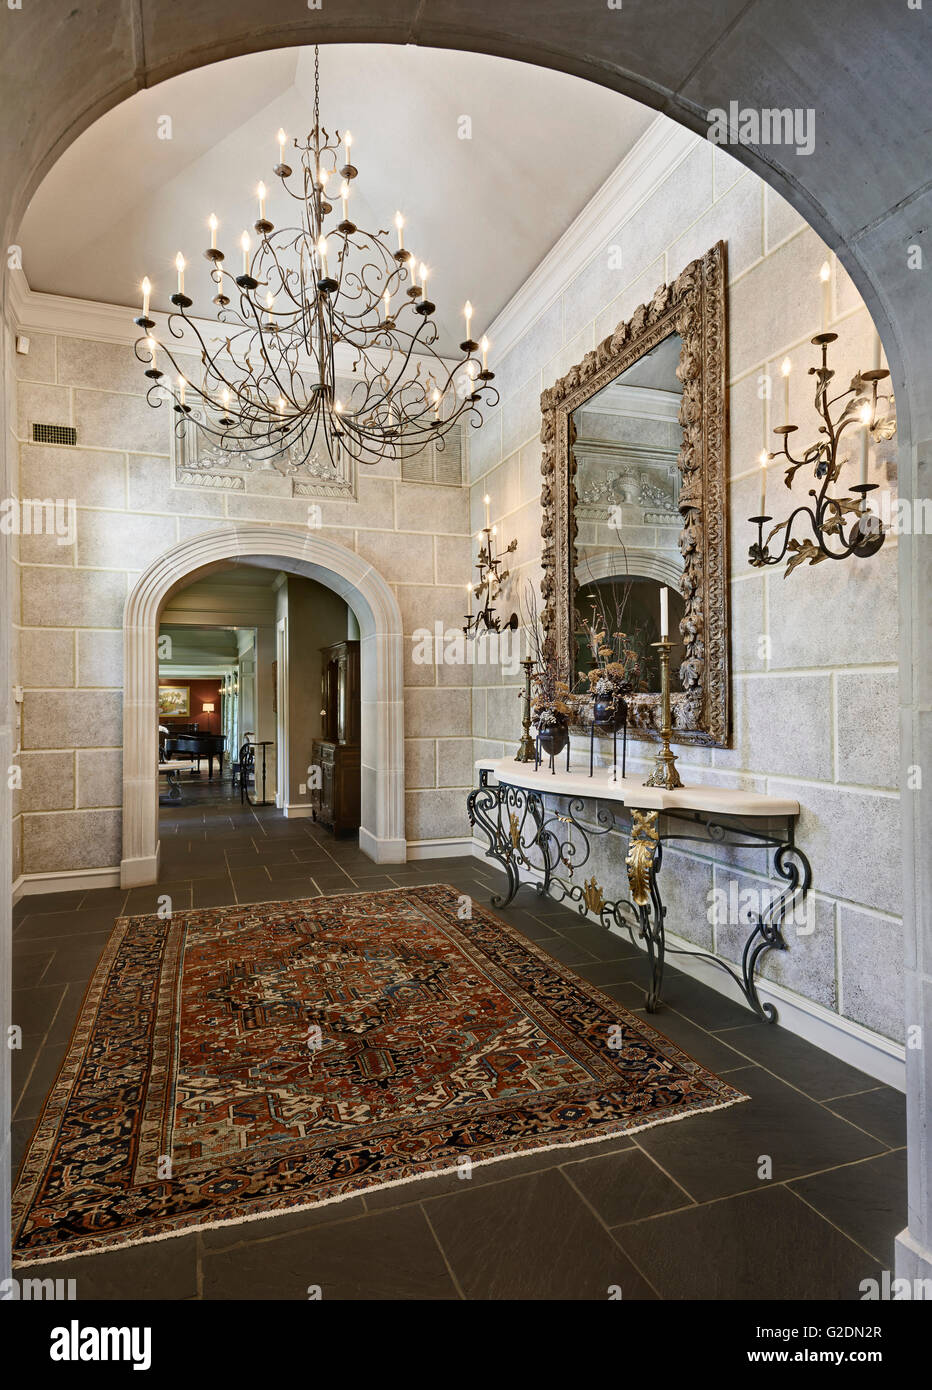 Foyer of Affluent House with Large Chandelier - Stock Image